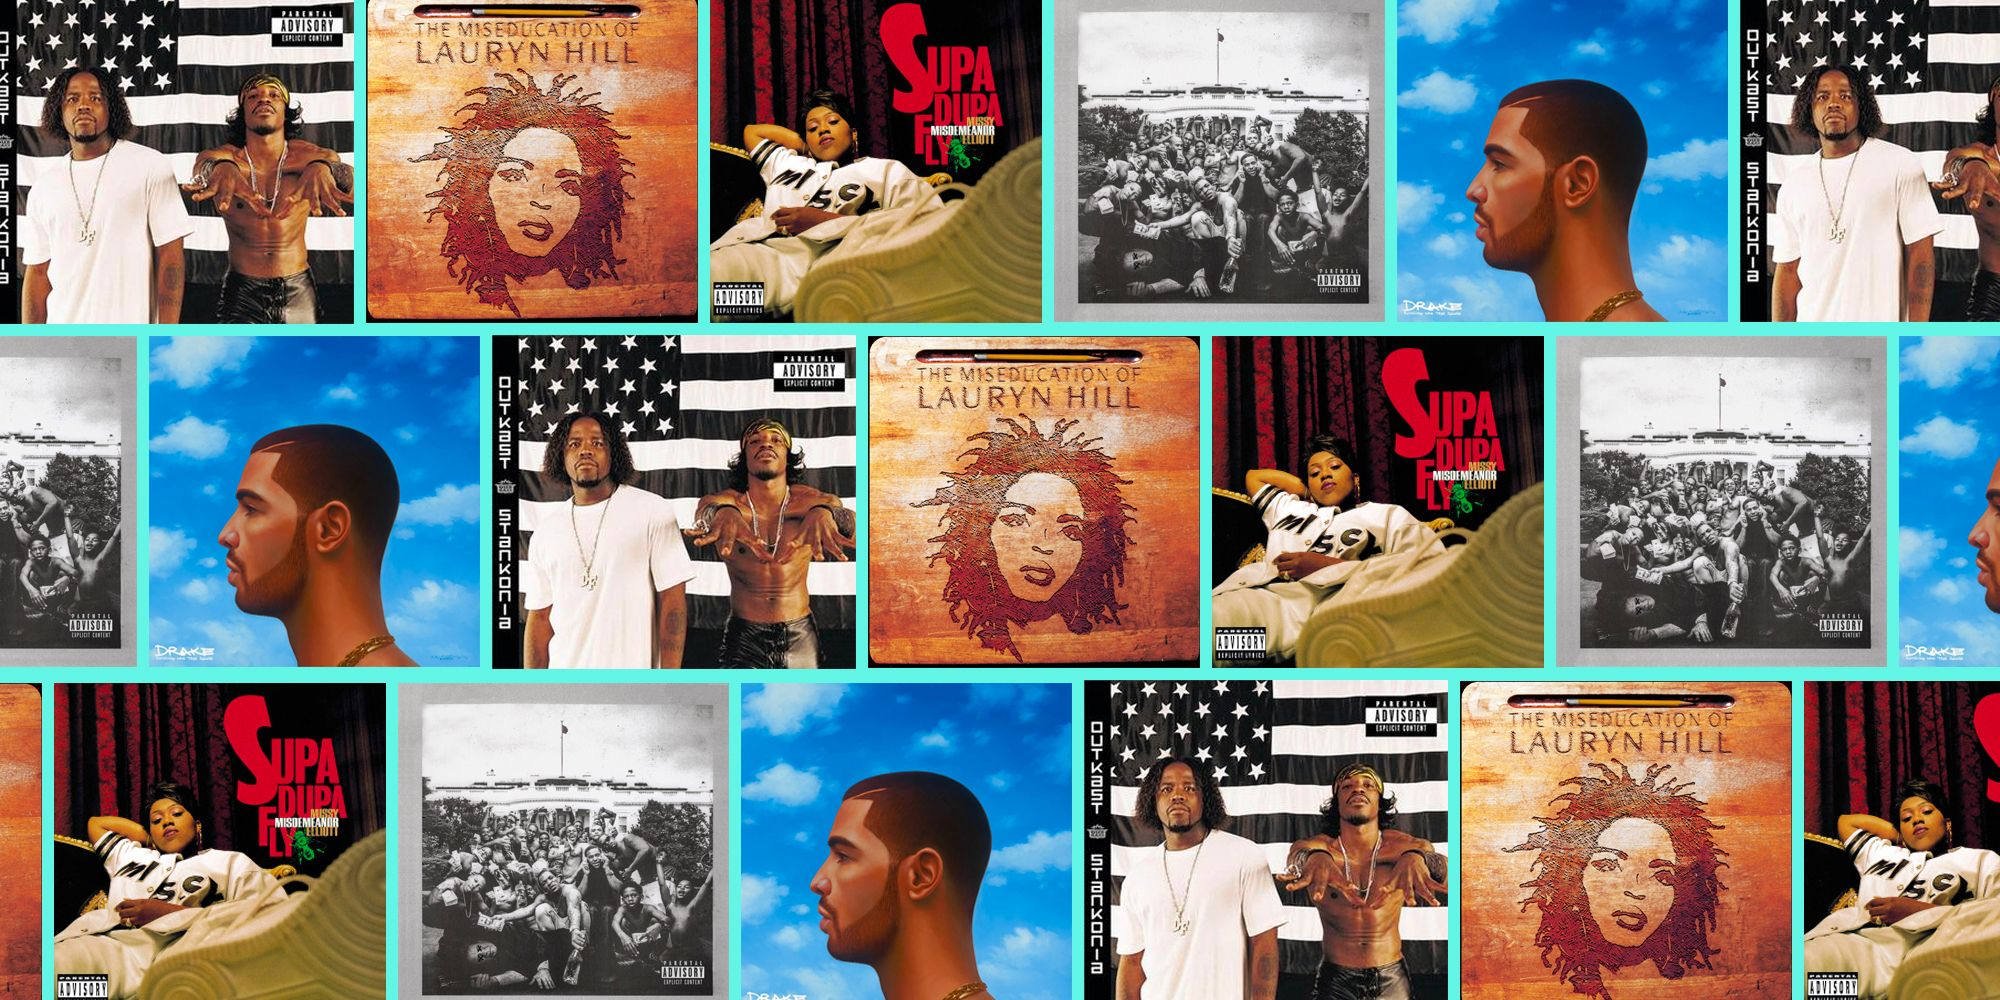 50 Best Hip-Hop Songs of All Time